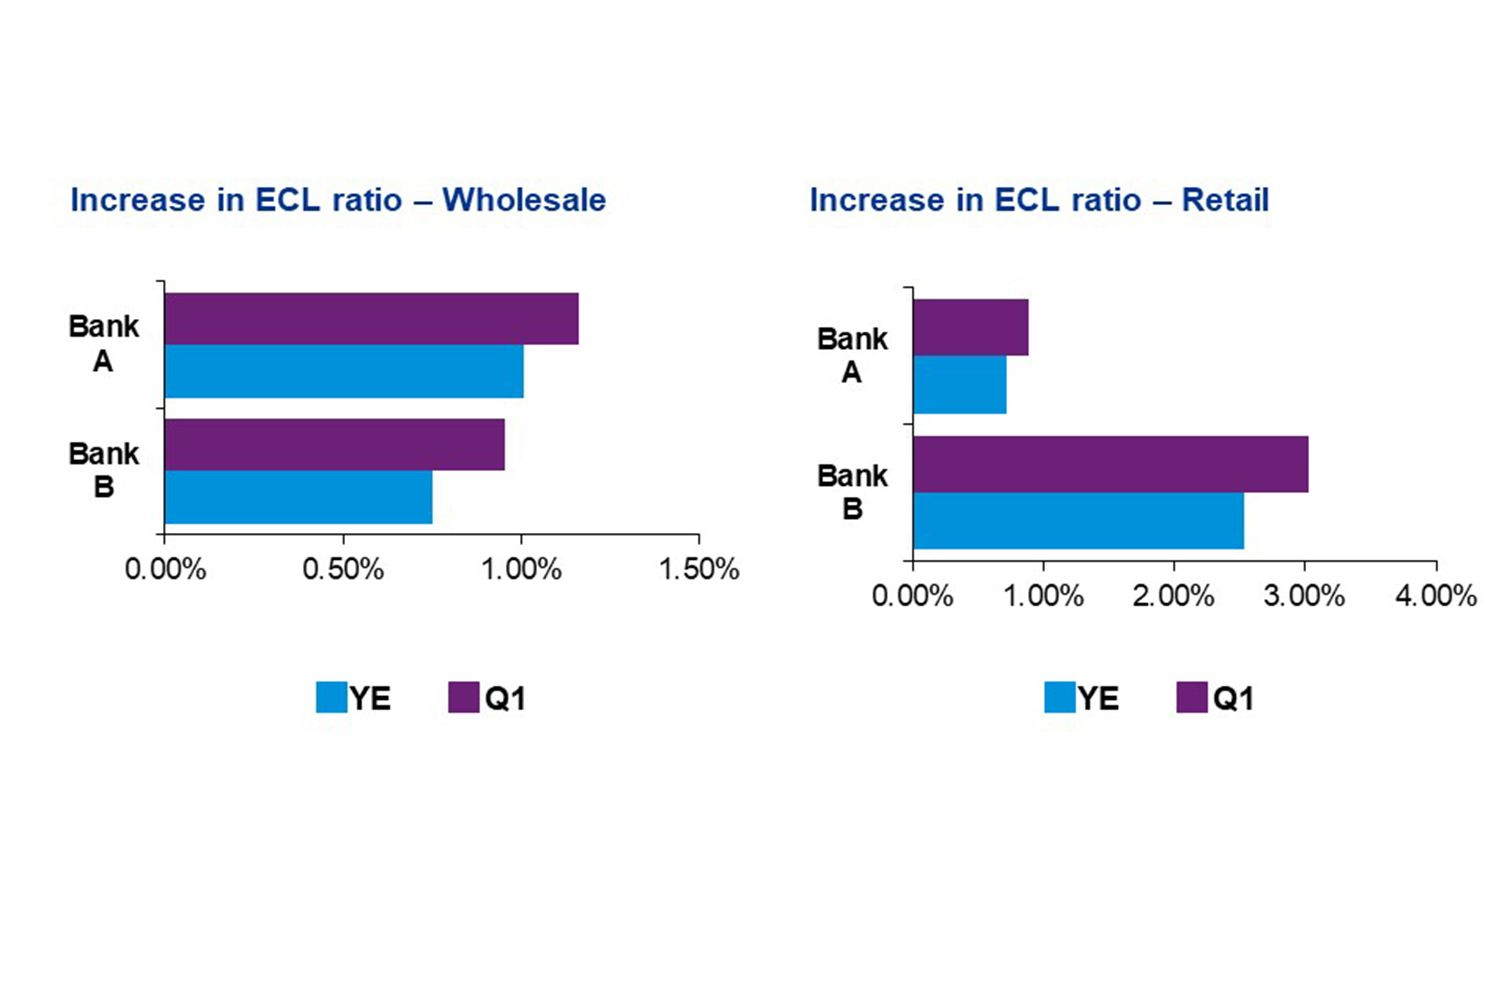 Increase in ECL ratio – Wholesale and Retail